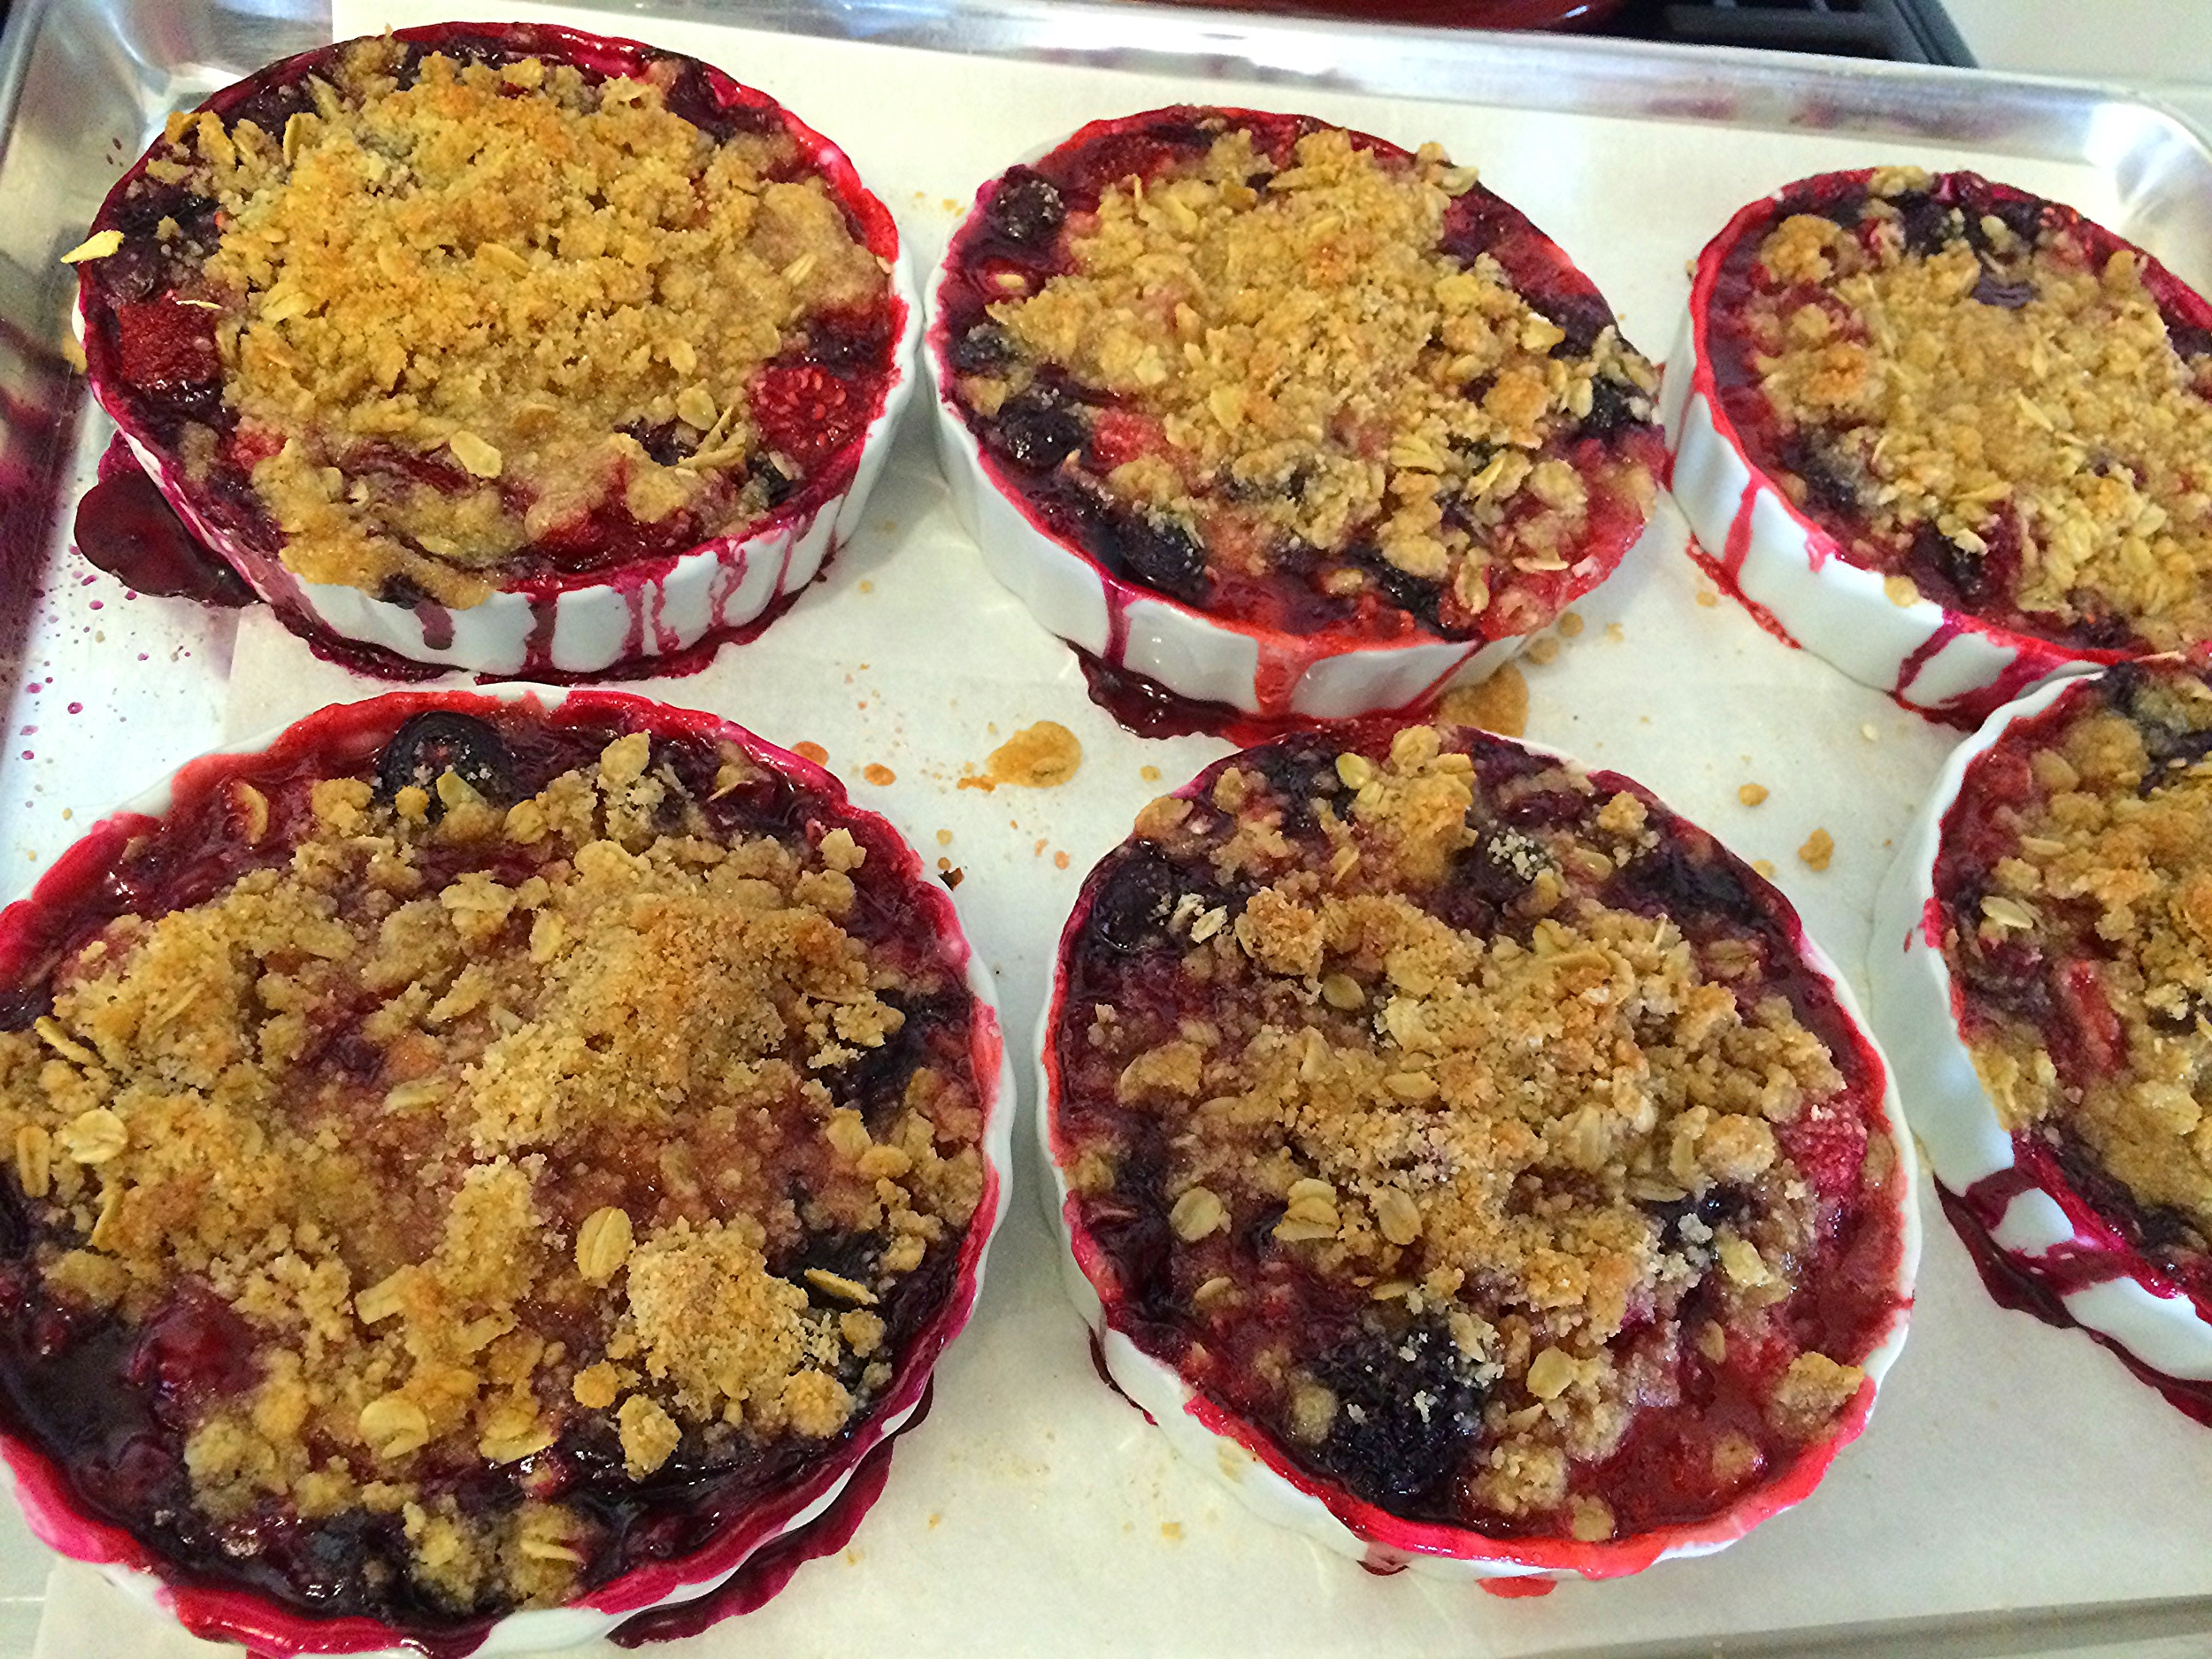 Maria's Crumble... all from Long Island berries ... today, w/ a scoop of good icecream